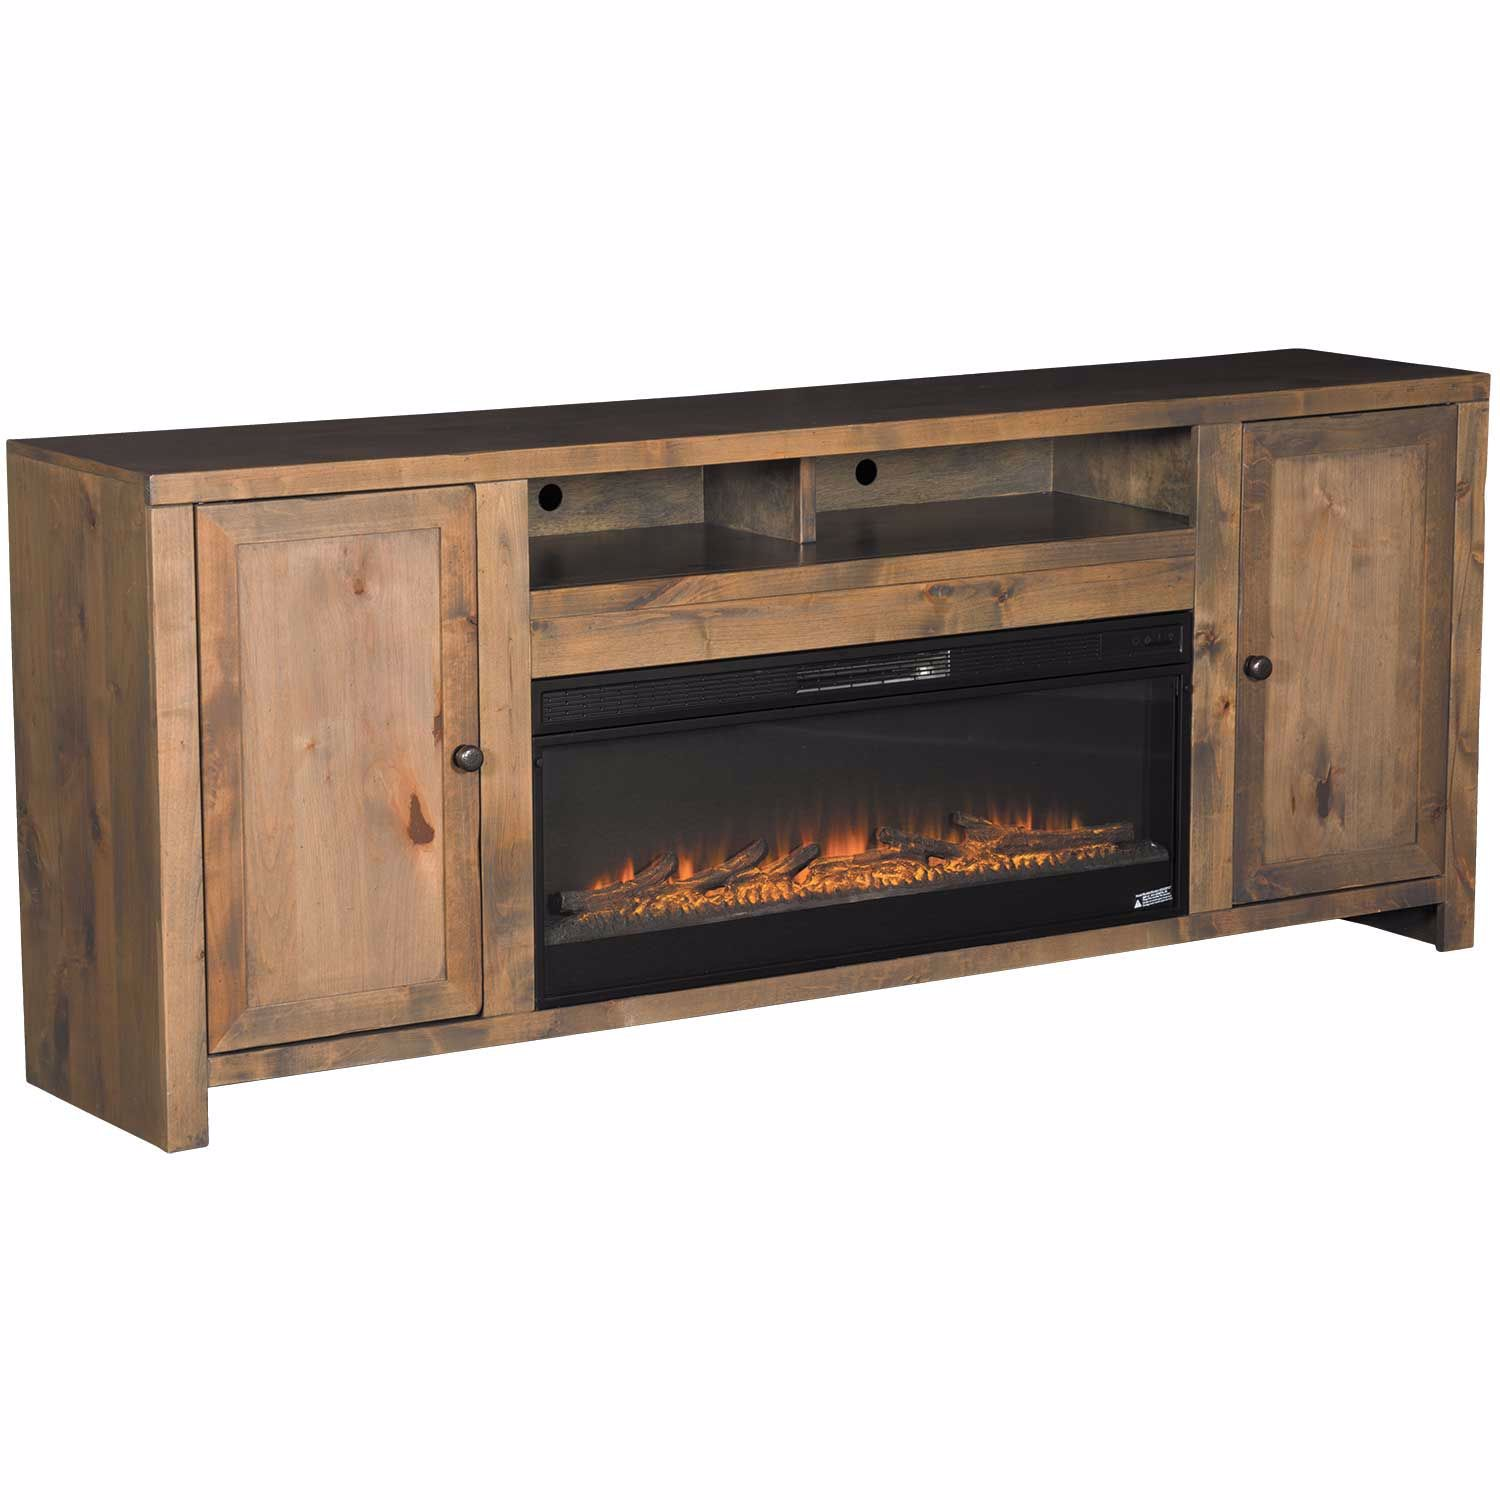 Picture of Joshua Creek 84 Inch Fireplace Console